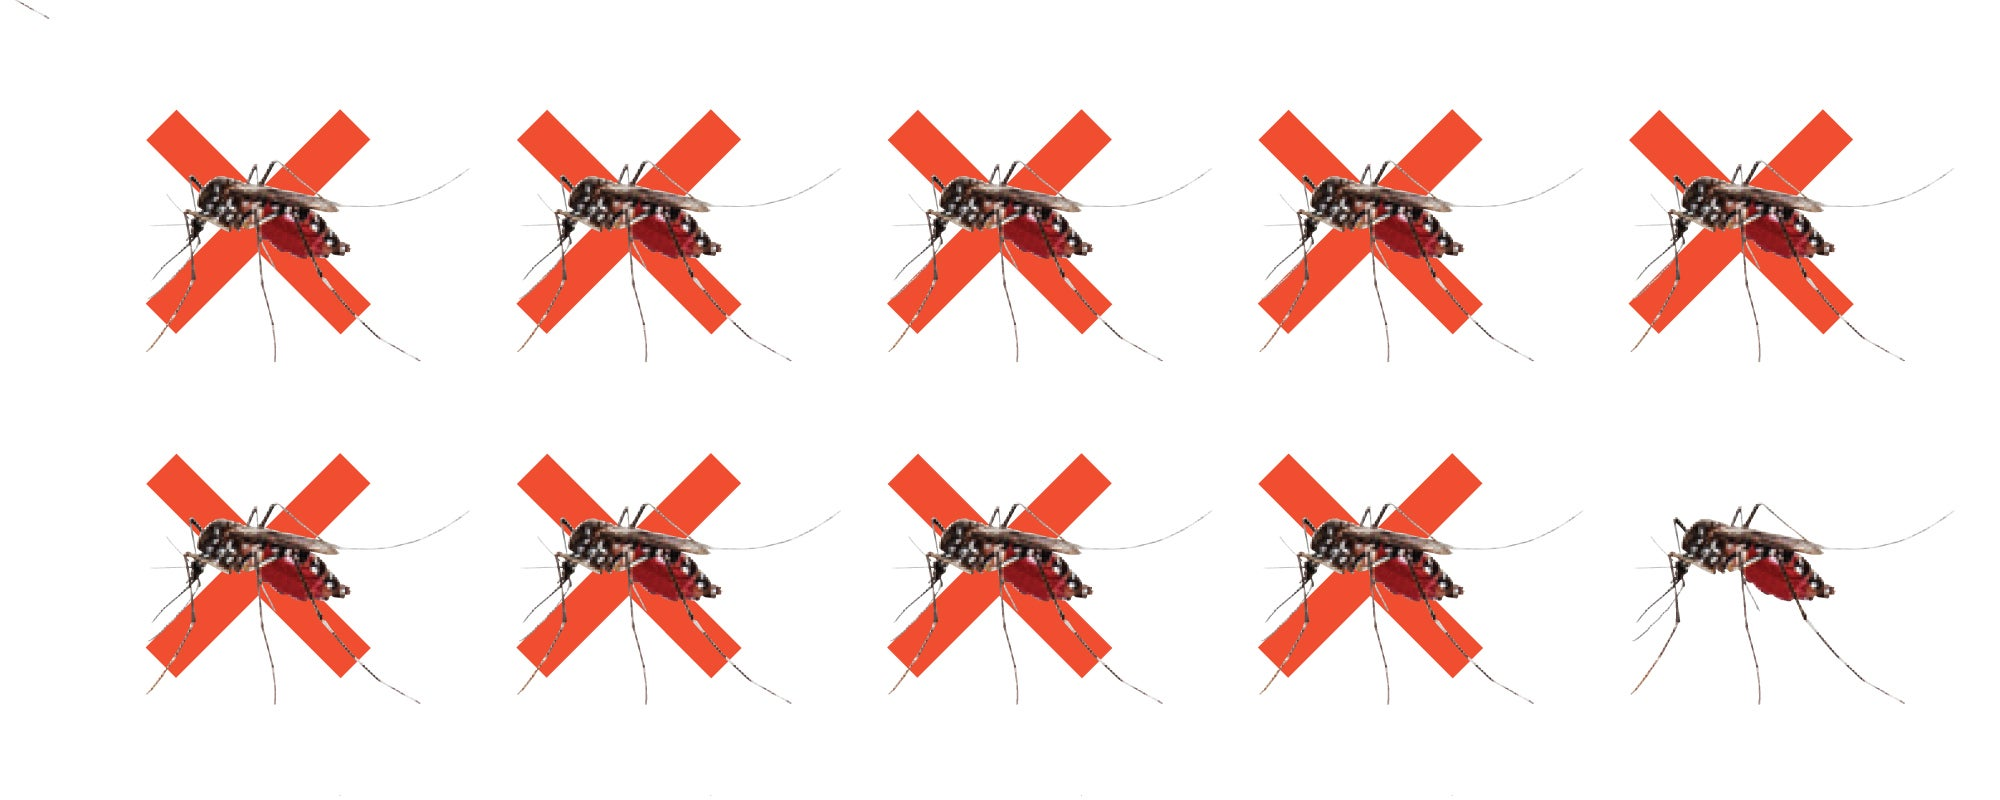 These Mosquitoes Are Designed To Self-Destruct